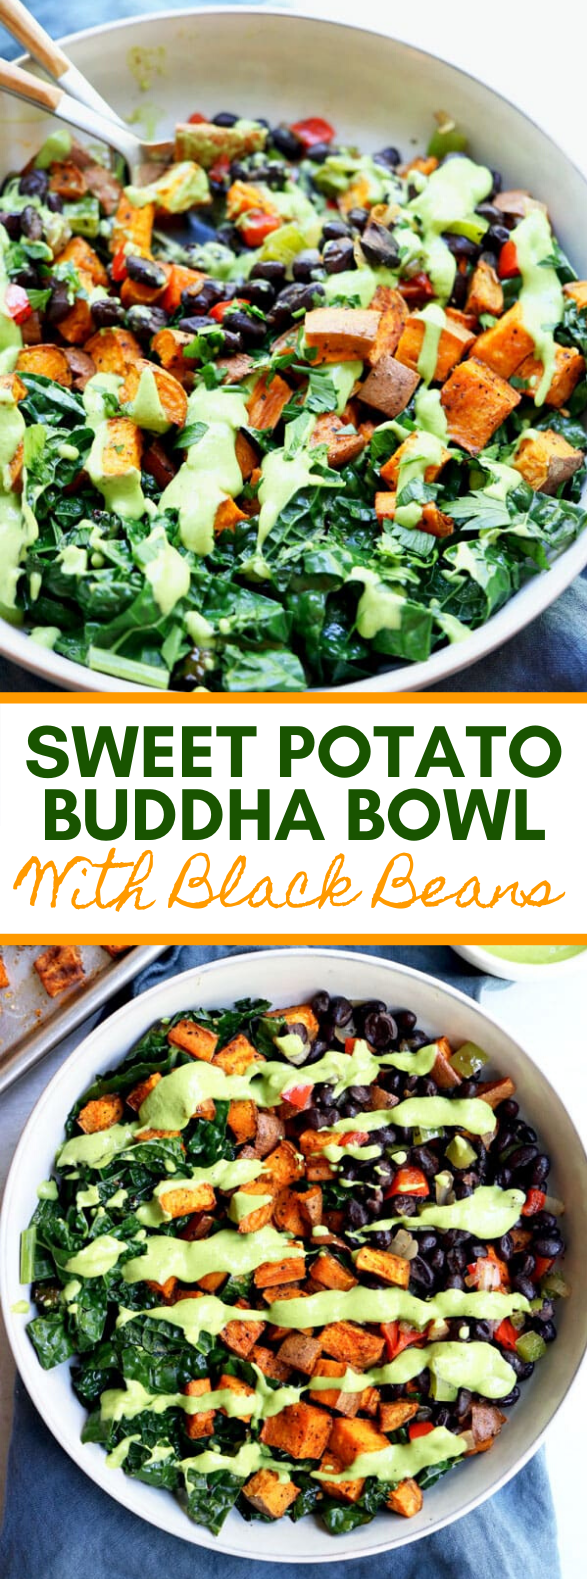 Sweet Potato Buddha Bowl With Black Beans #vegetarian #healthy